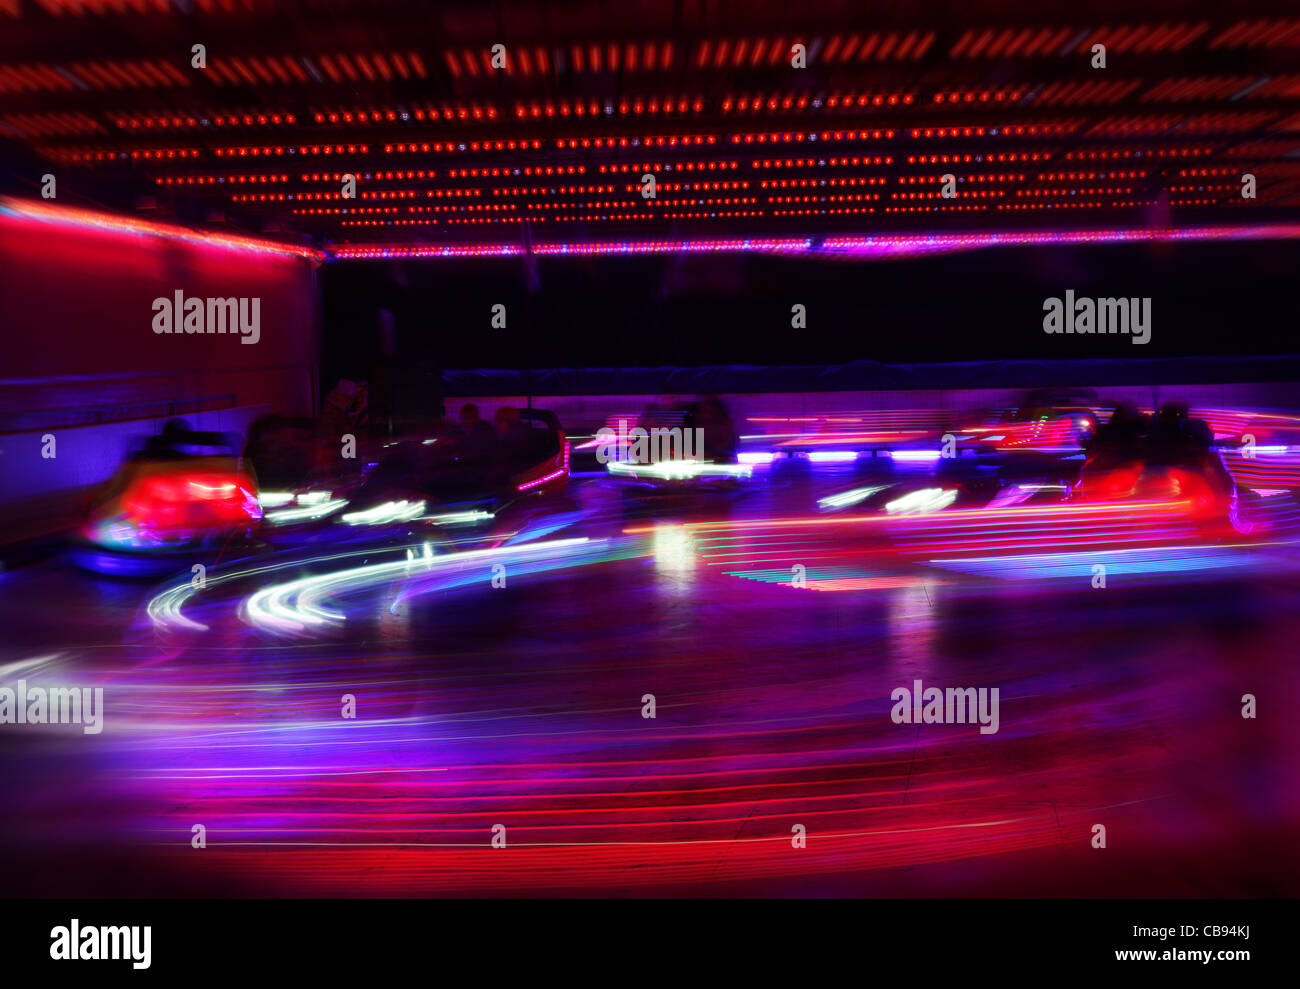 Dodgem cars in motion Photo Stock